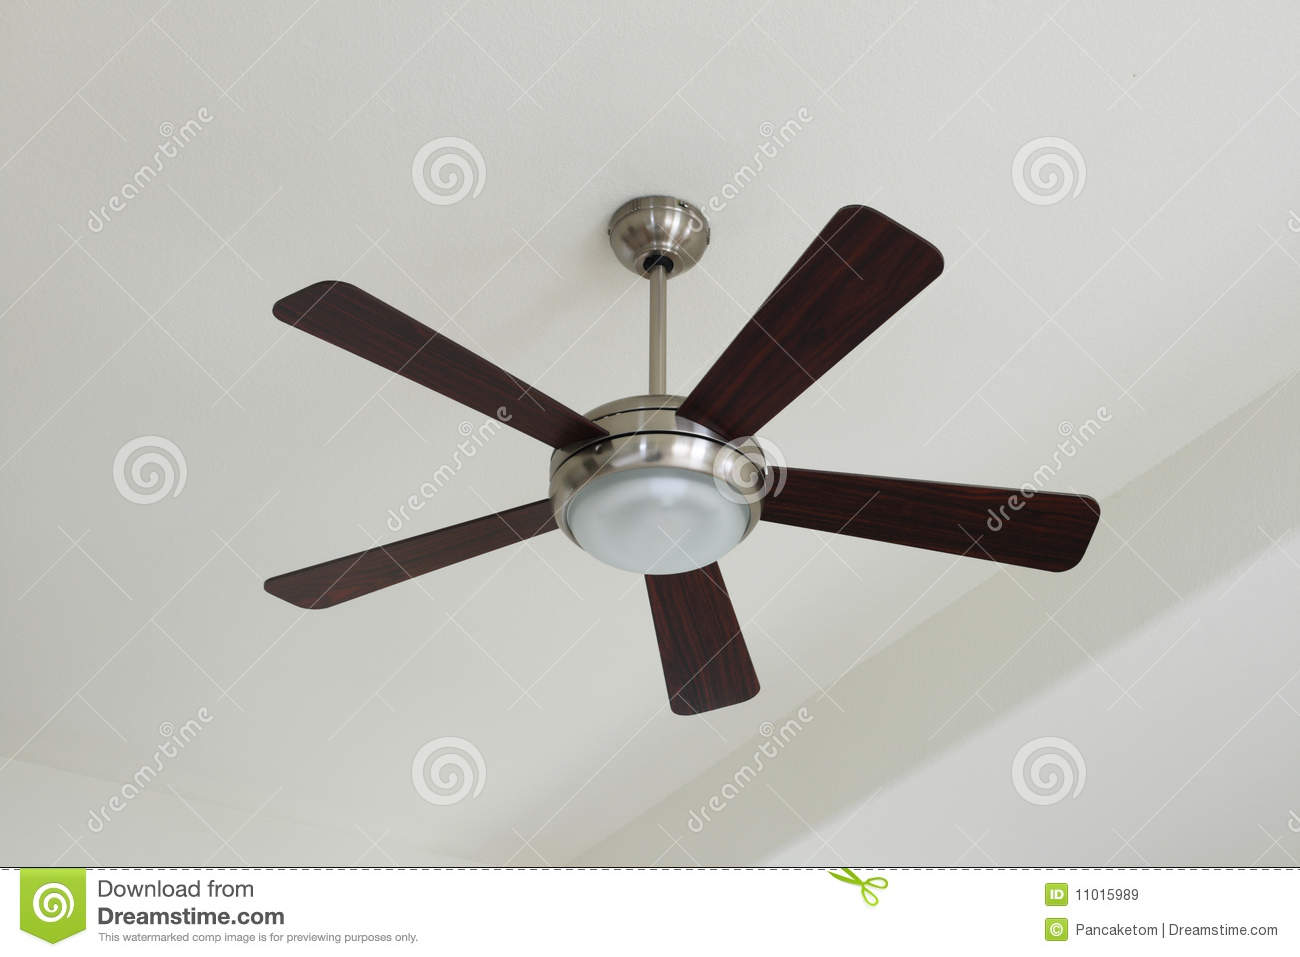 Silver and wood ceiling fan with a light on a white ceiling.